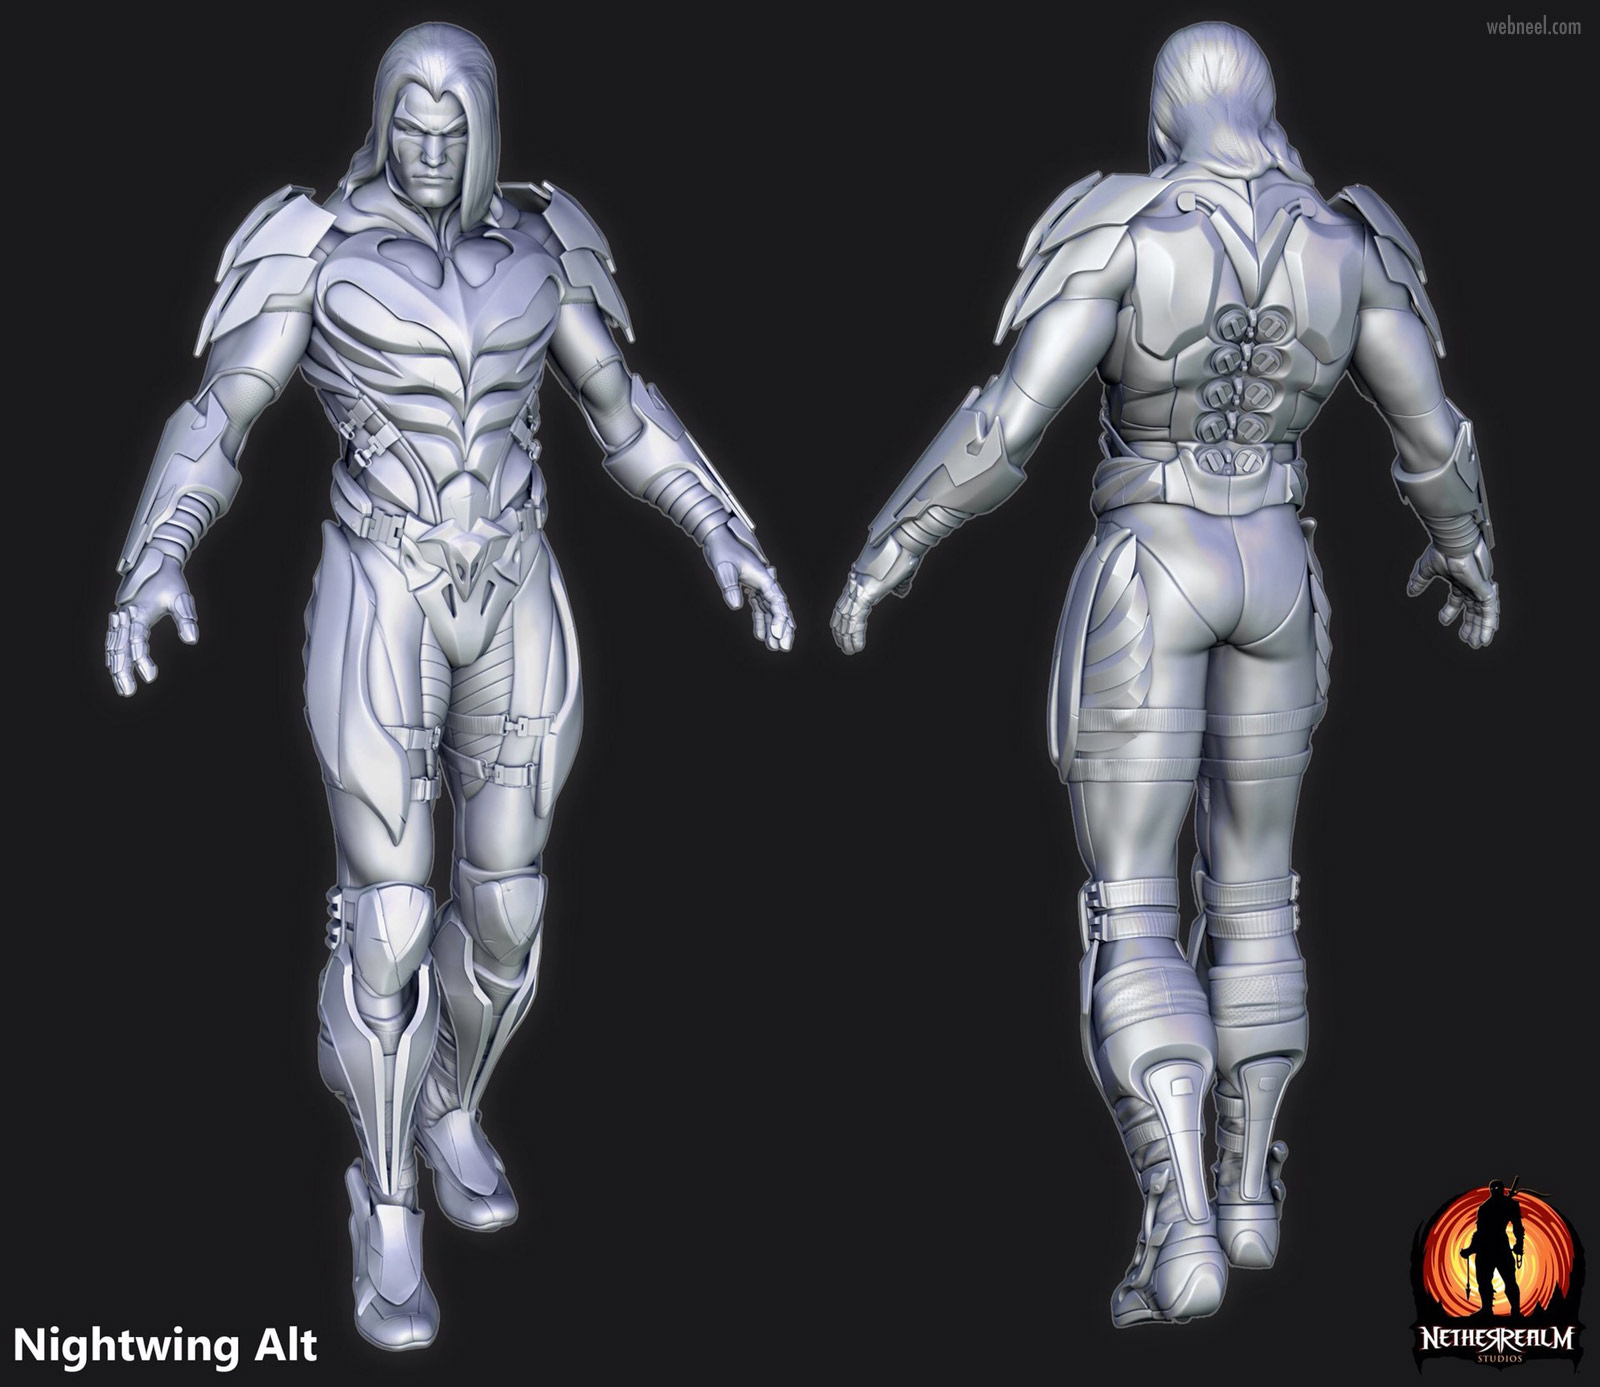 3d model character nightwing monster fighter